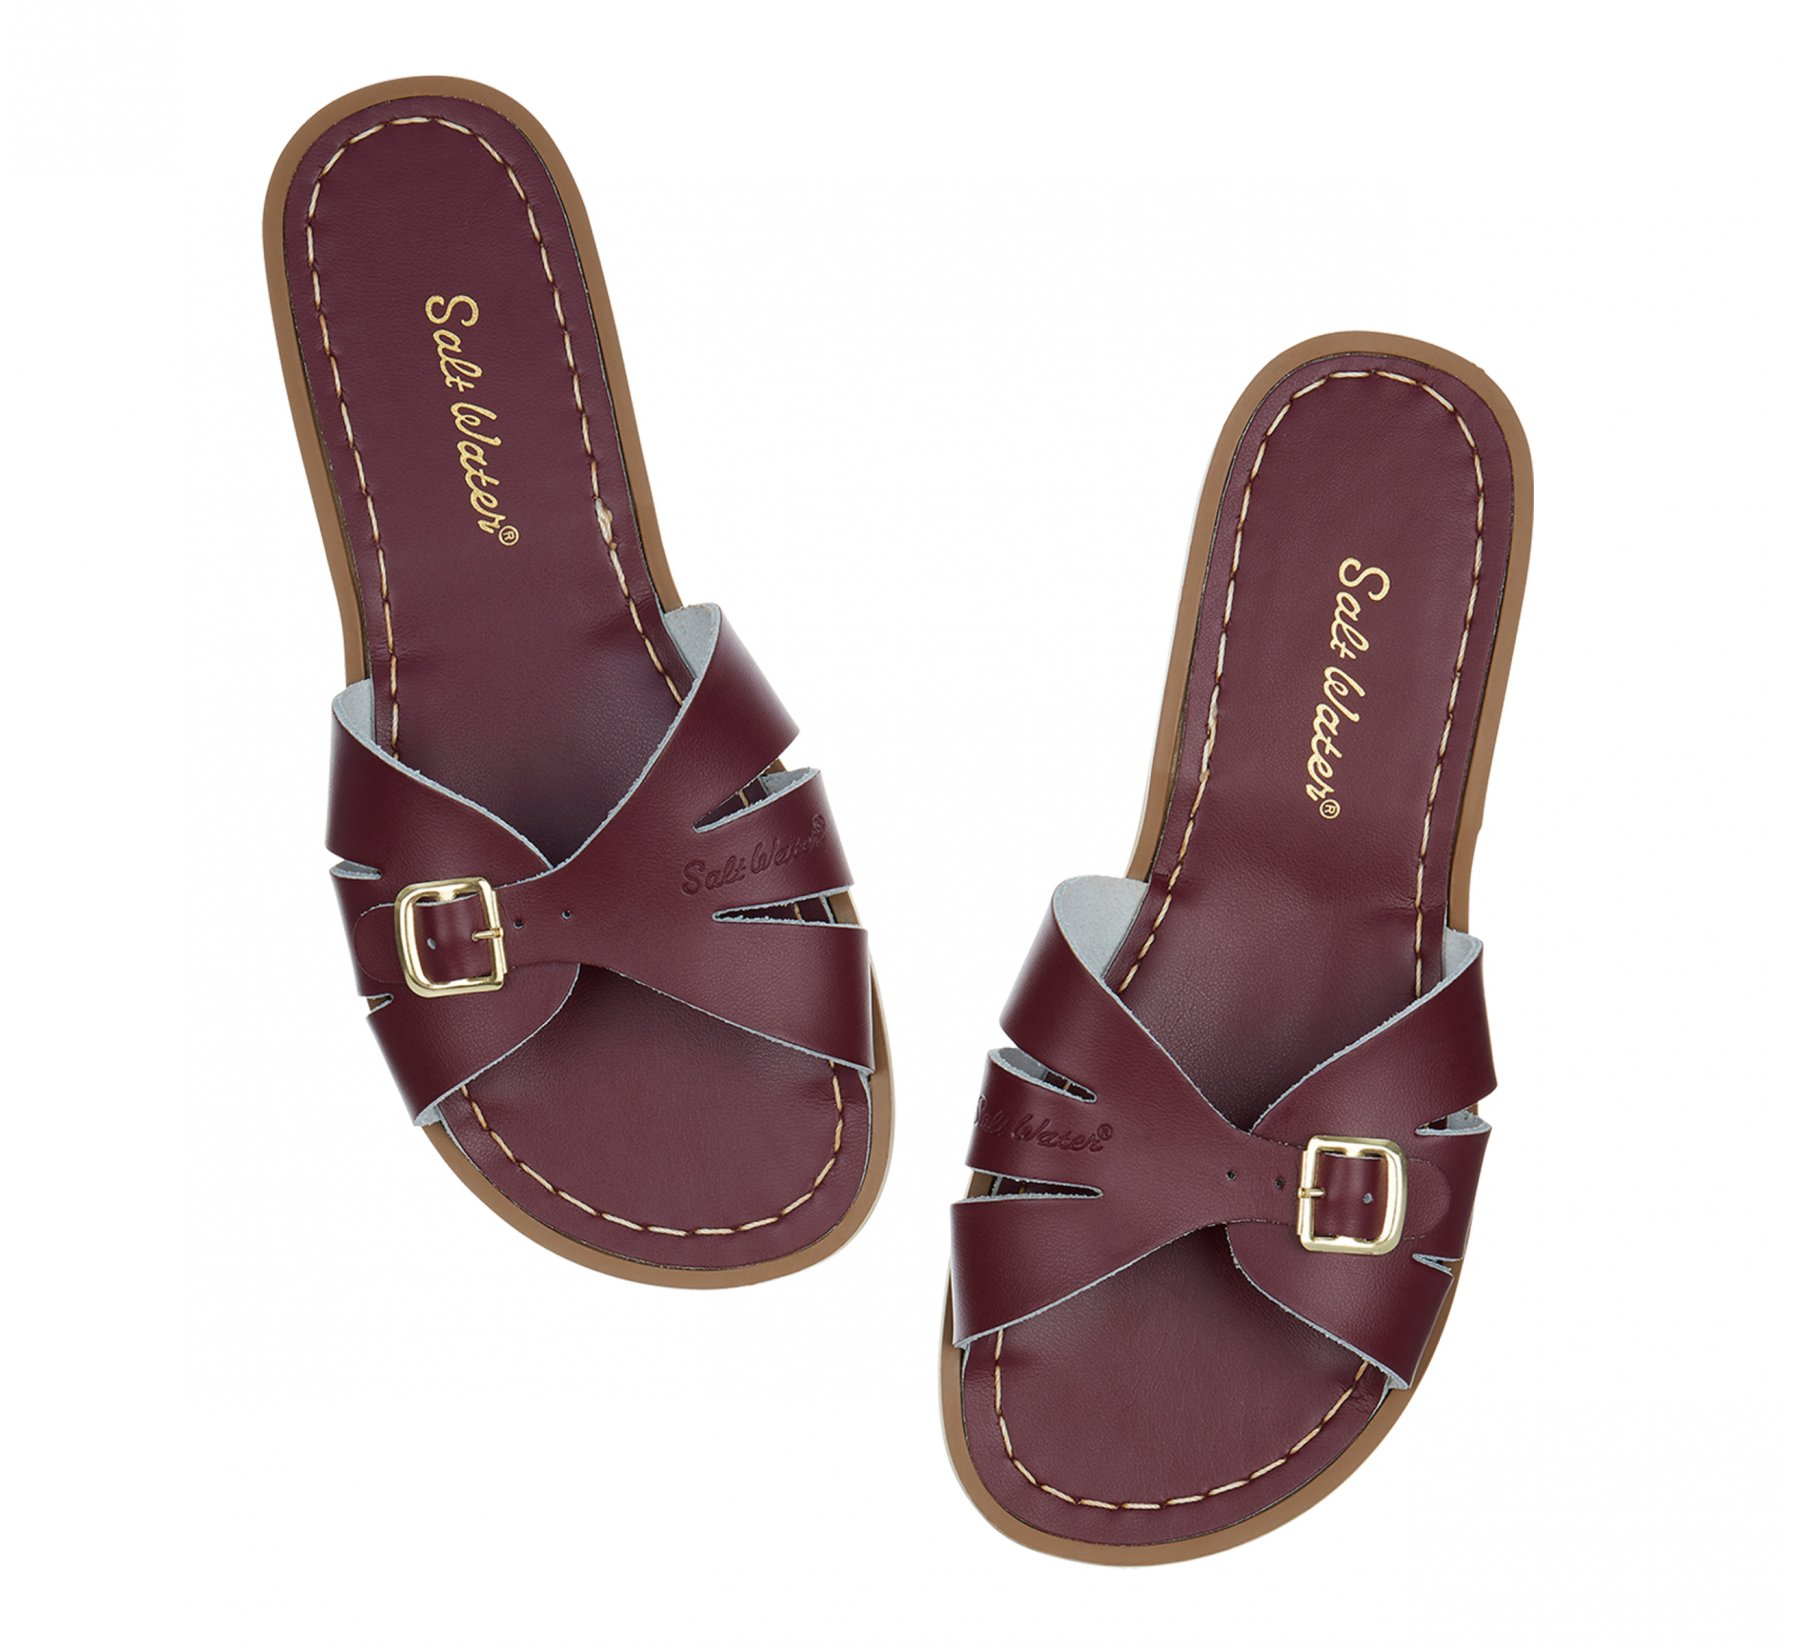 Classic Slide Claret - Salt Water Sandals